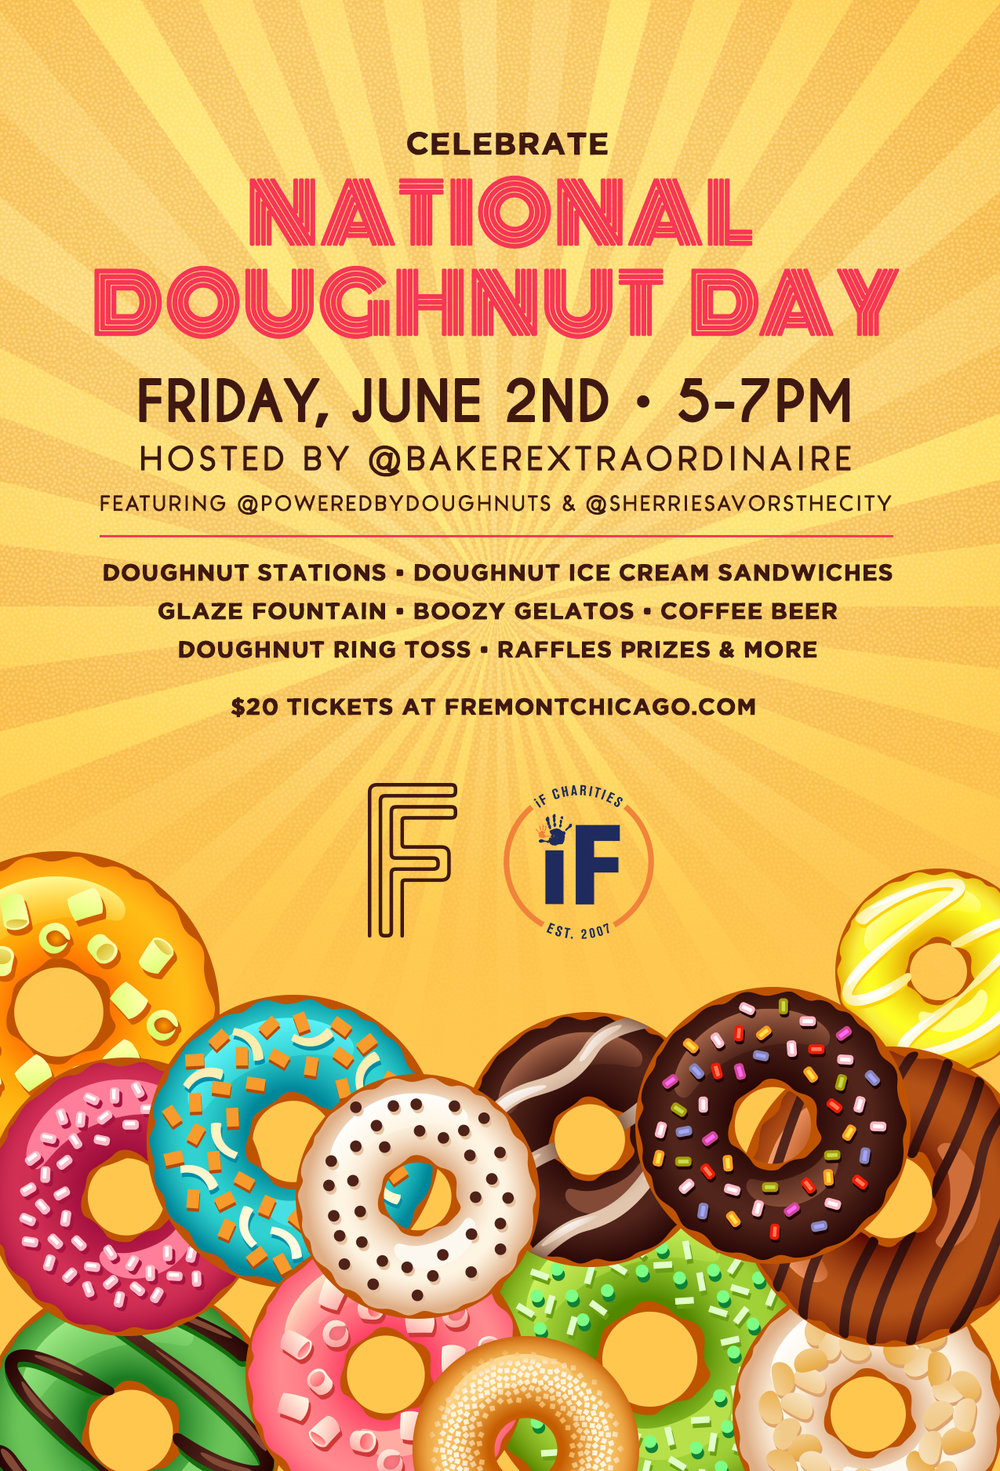 Help iF Charities celebrate National Doughnut Day at Fremont! -